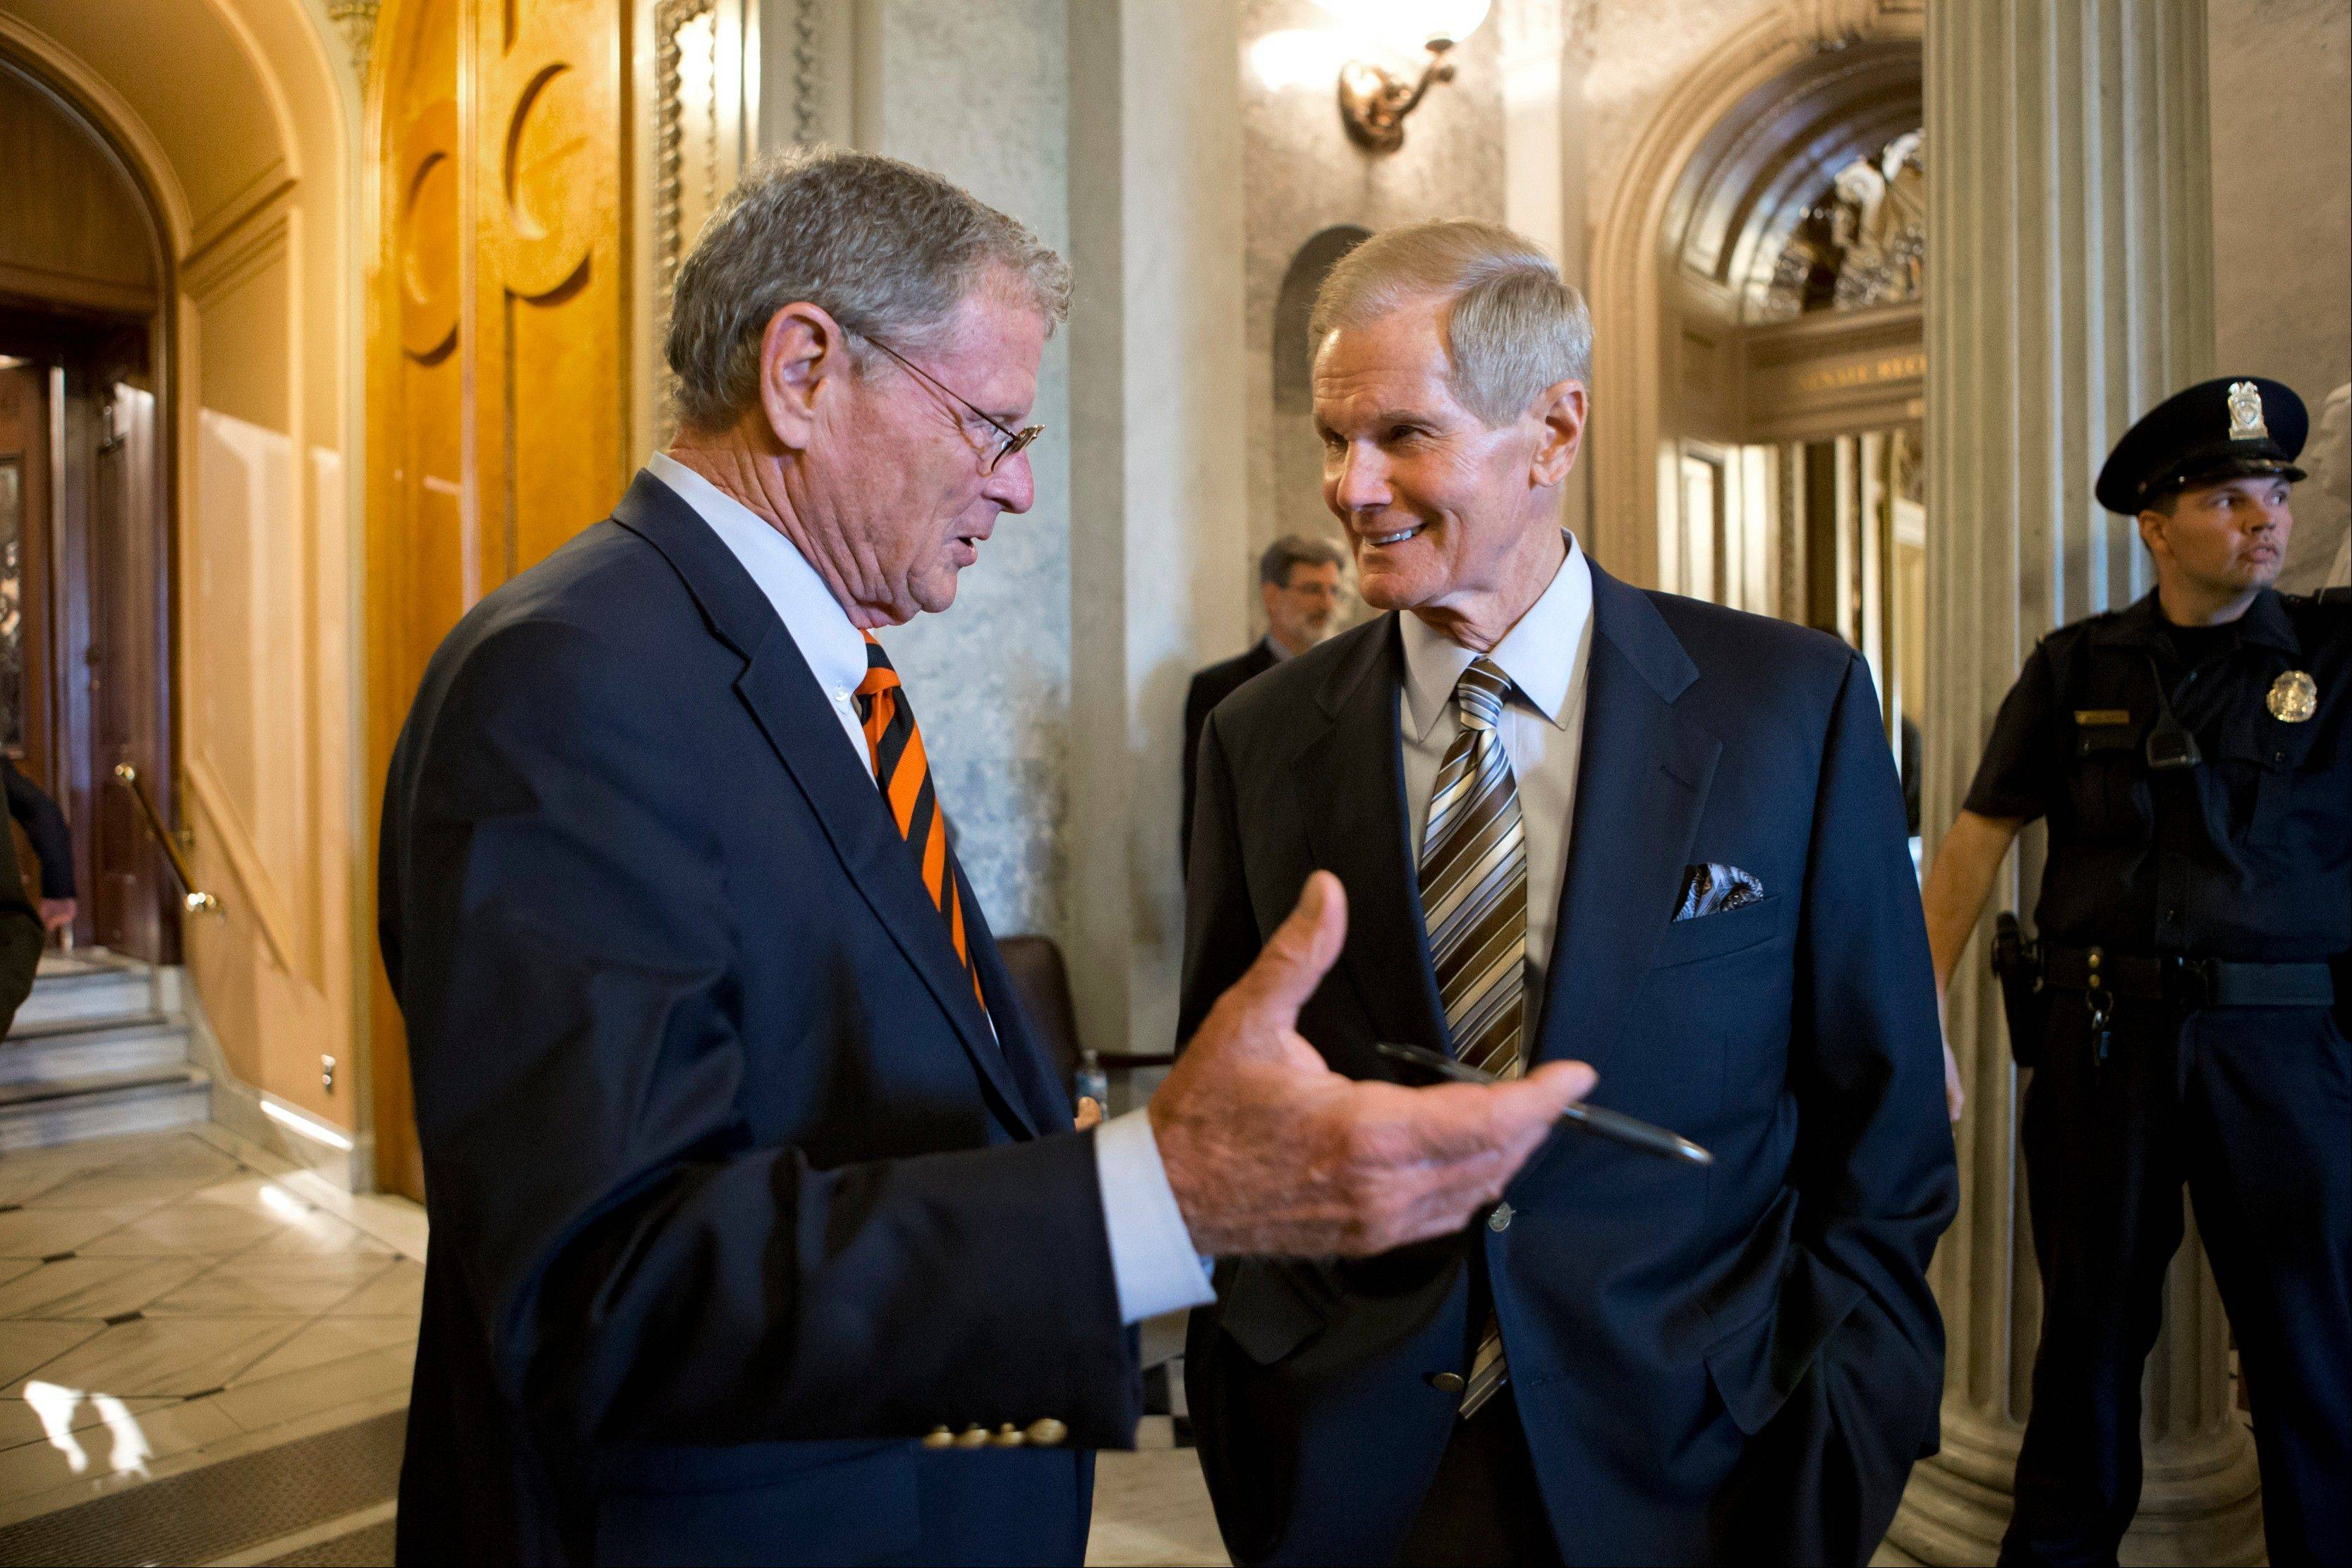 Sen. James Inhofe, an Oklahoma Republican, left, speaks with Sen. Bill Nelson, a Florida Democrat, outside the chamber after the immigration bill got more than 60 needed votes to advance in the Senate on Monday.